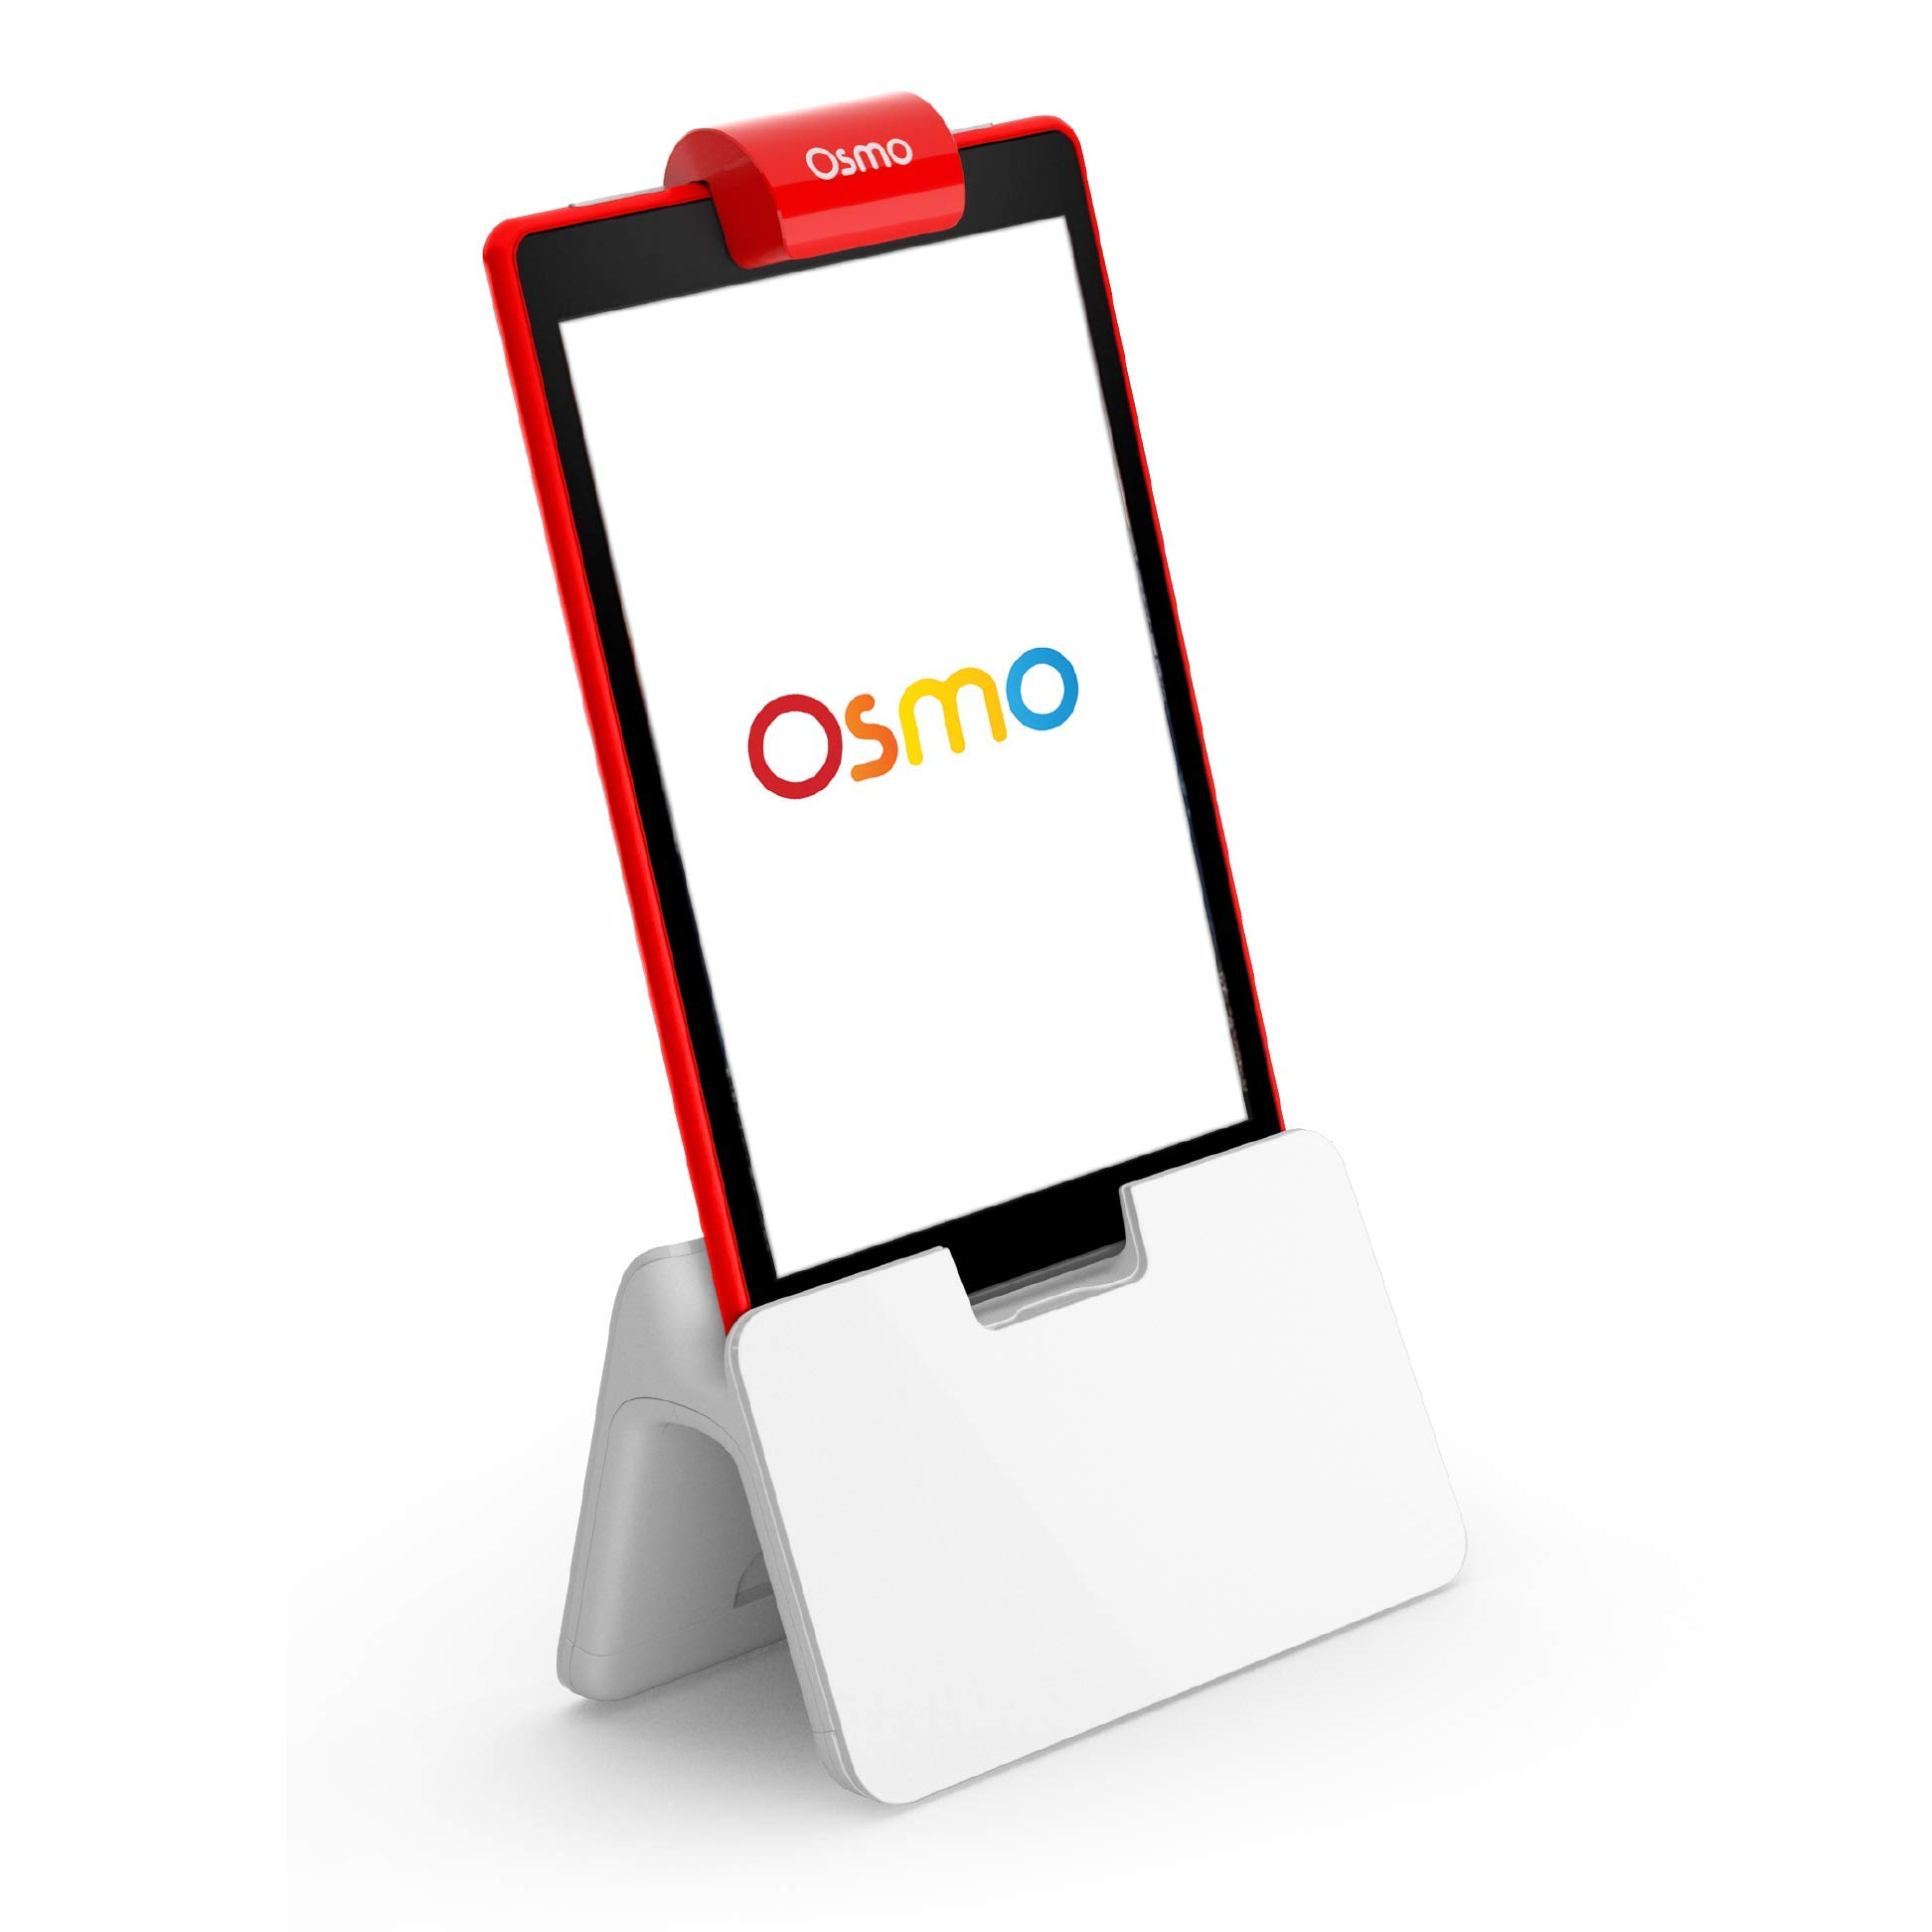 Osmo - Base - 2 Hands-On Learning Games - Creative Drawing & Problem Solving/Early Physics - For Fire Tablet (Osmo Fire Tablet Base Included), White/Red